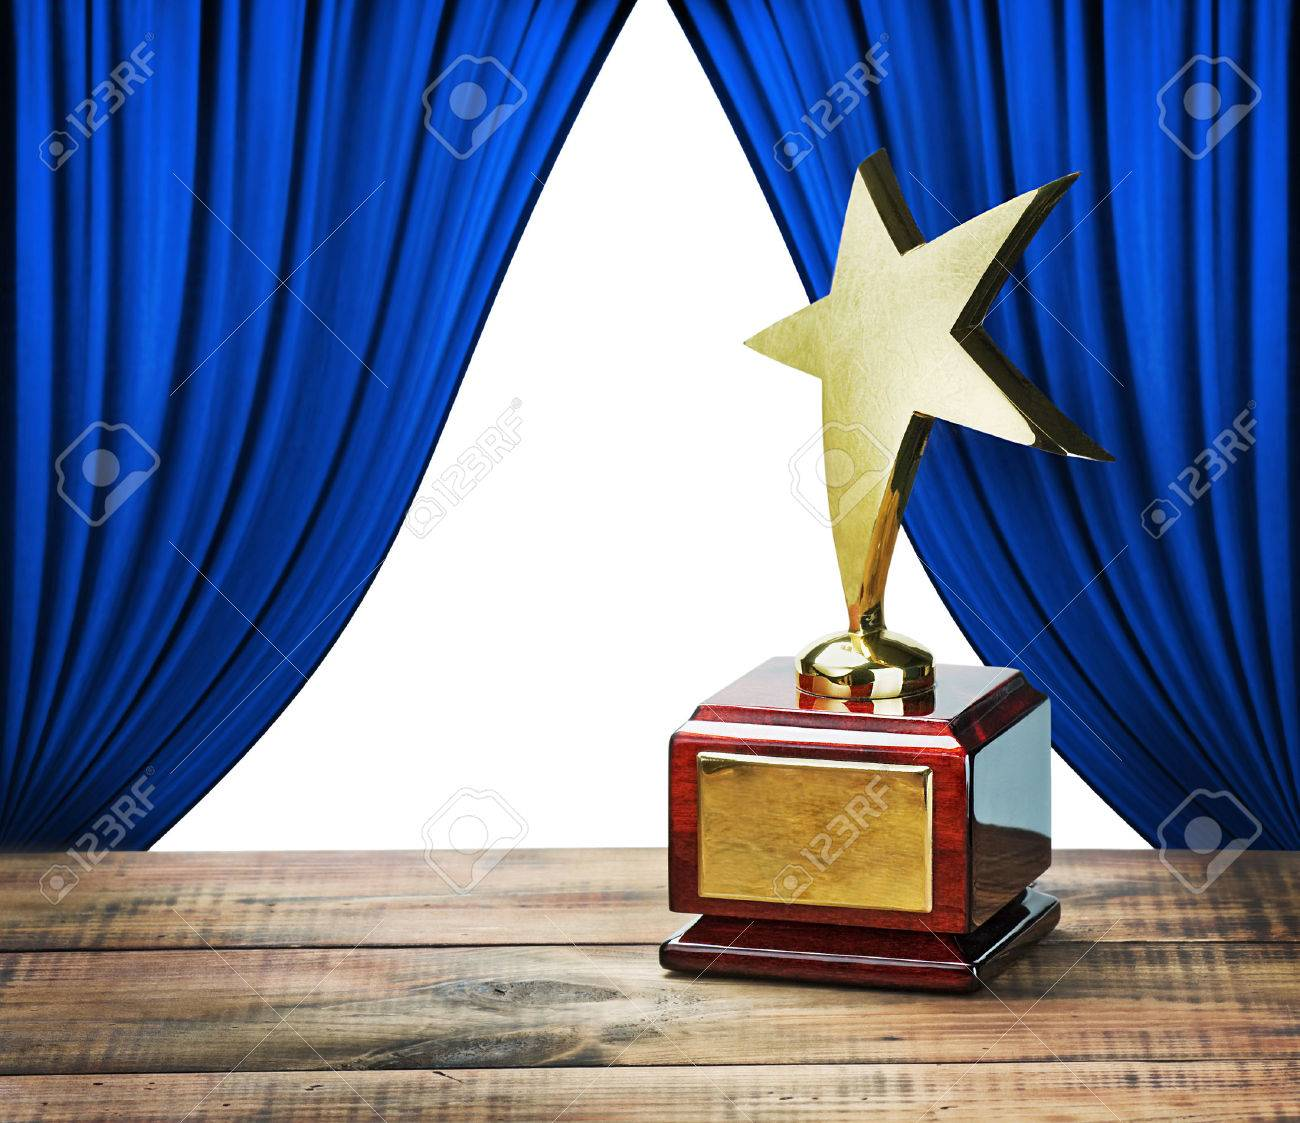 Star Award And Blue Curtains With Space For Text On White Background Stock Photo